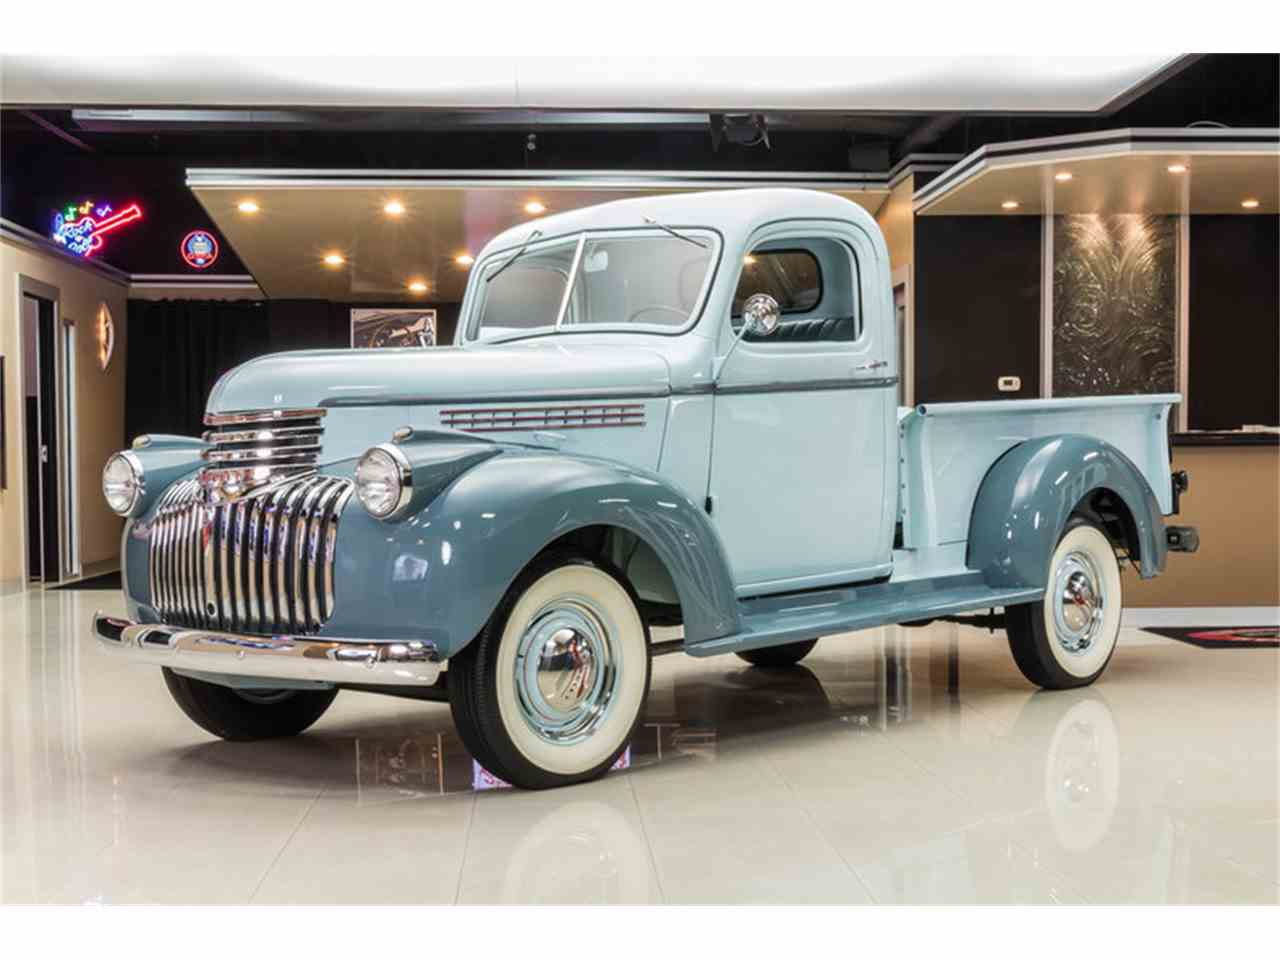 Classic Chevrolet Pickup for Sale on ClassicCars.com - Pg 4